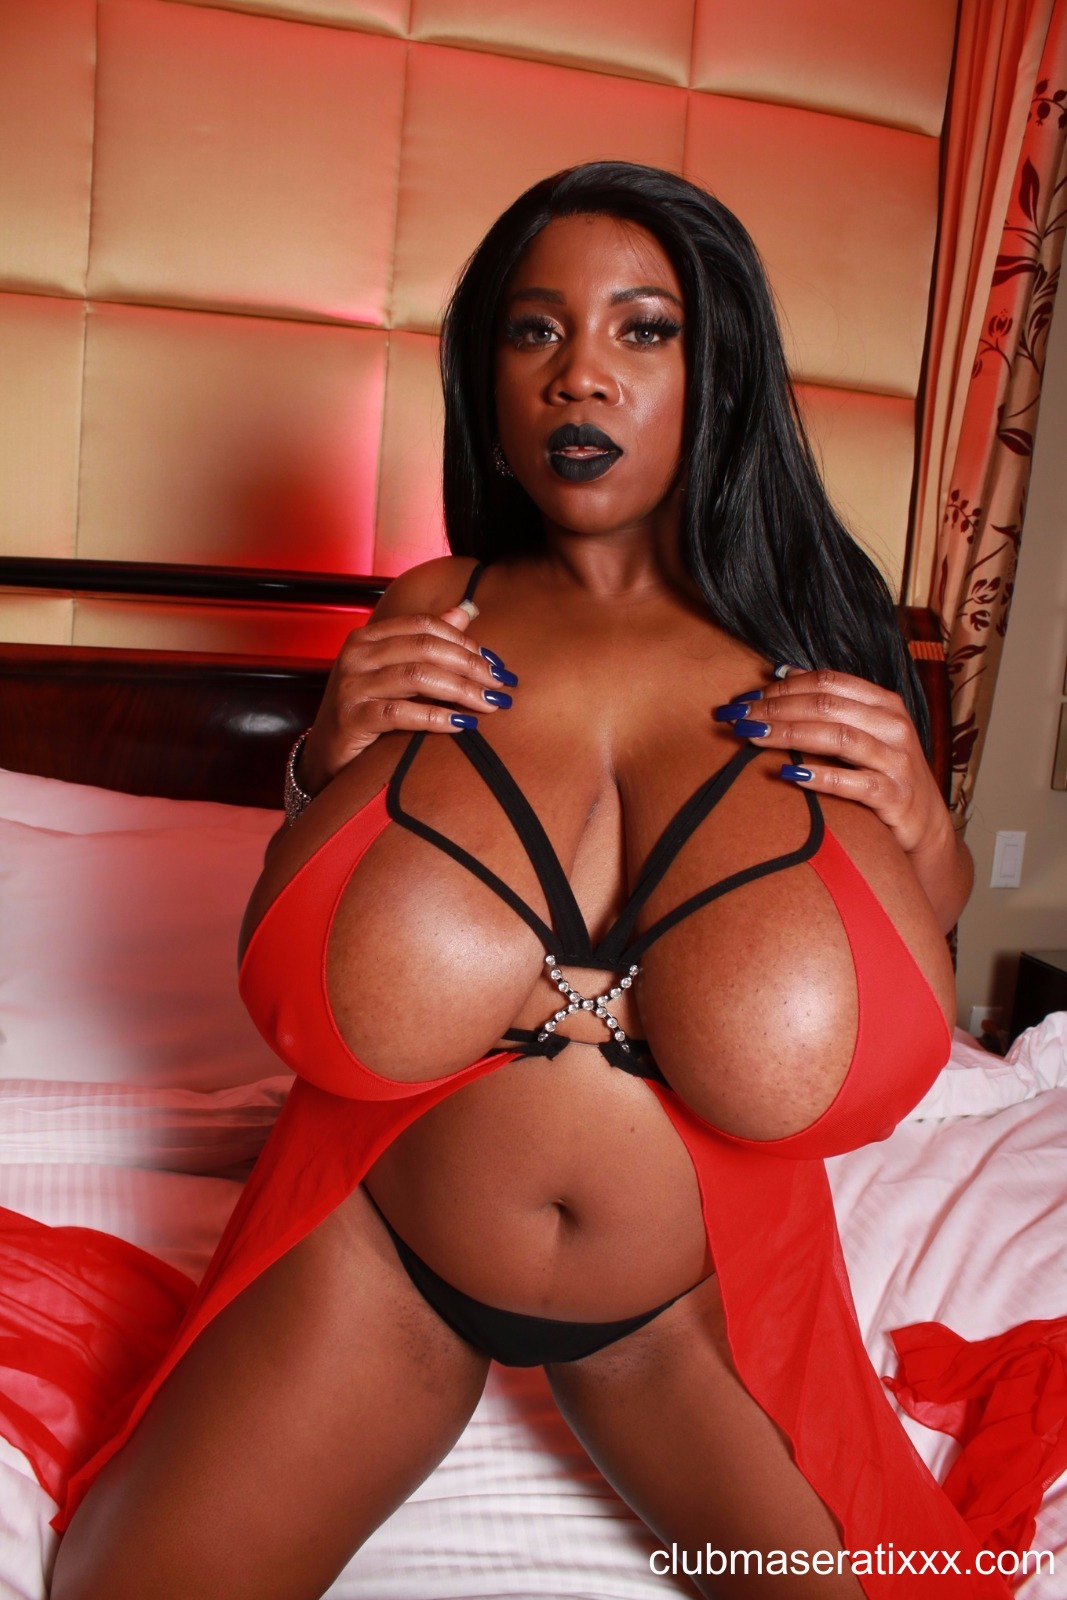 Exist? Black girl boobs sexy bra